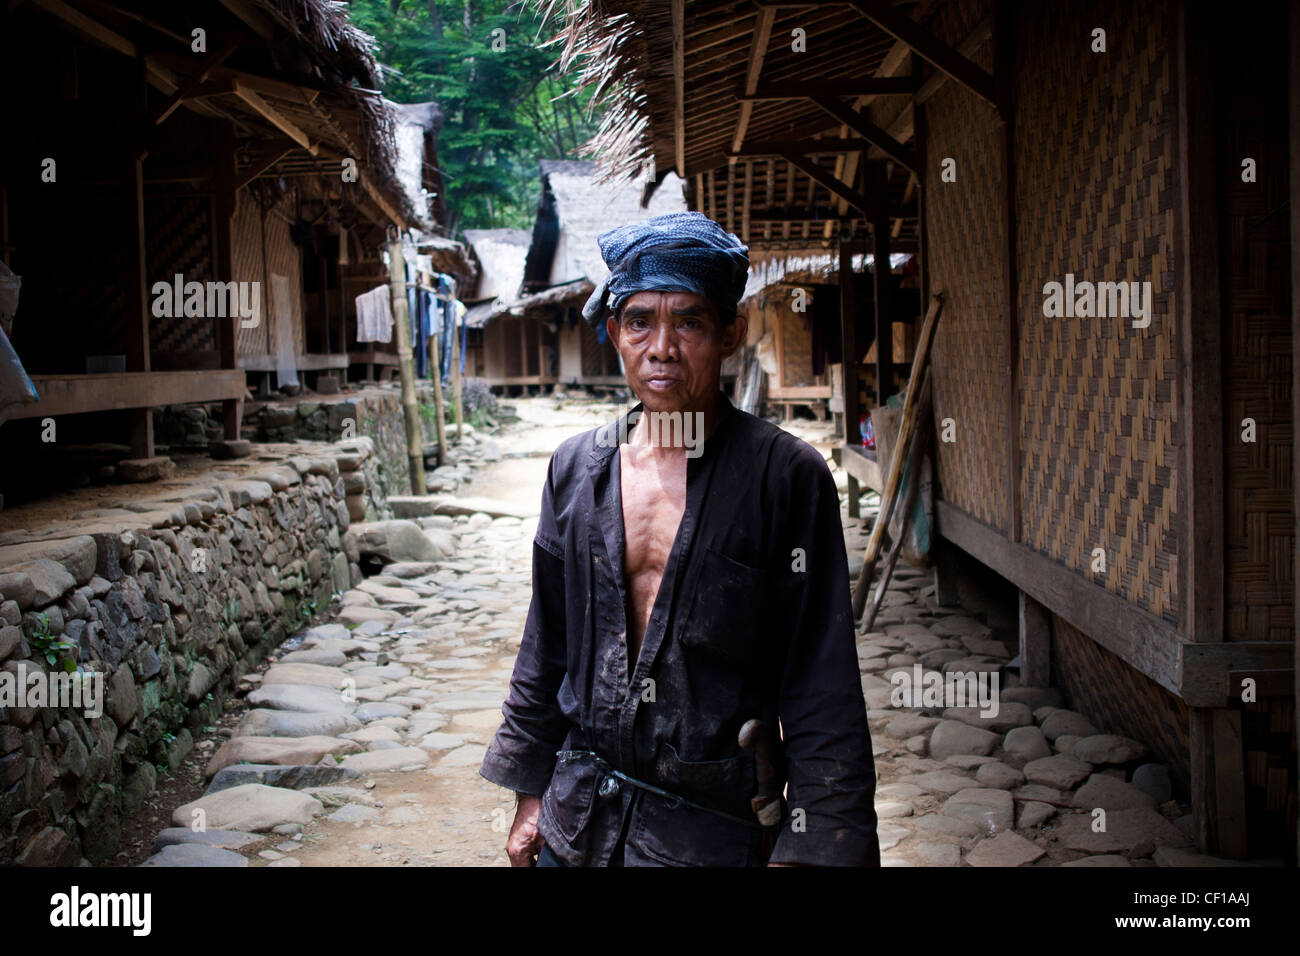 Mr. Sali is a parent who is respected by the local community in Baduy village of Foreign Gajeboh. - Stock Image